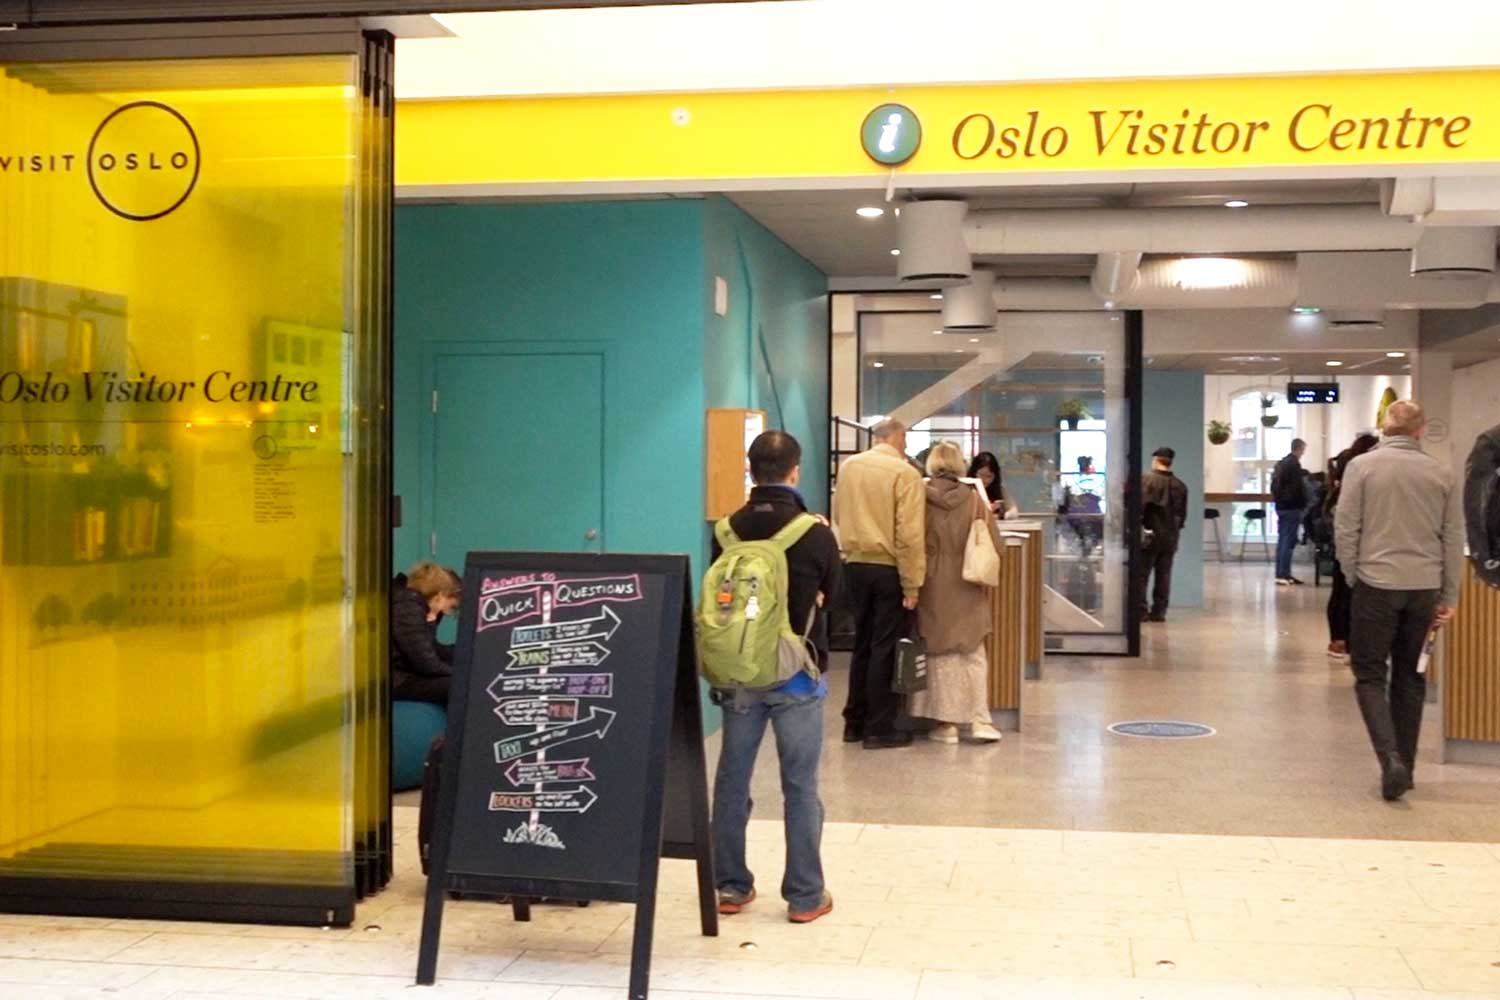 Get your Oslo Pass here at the visitors center